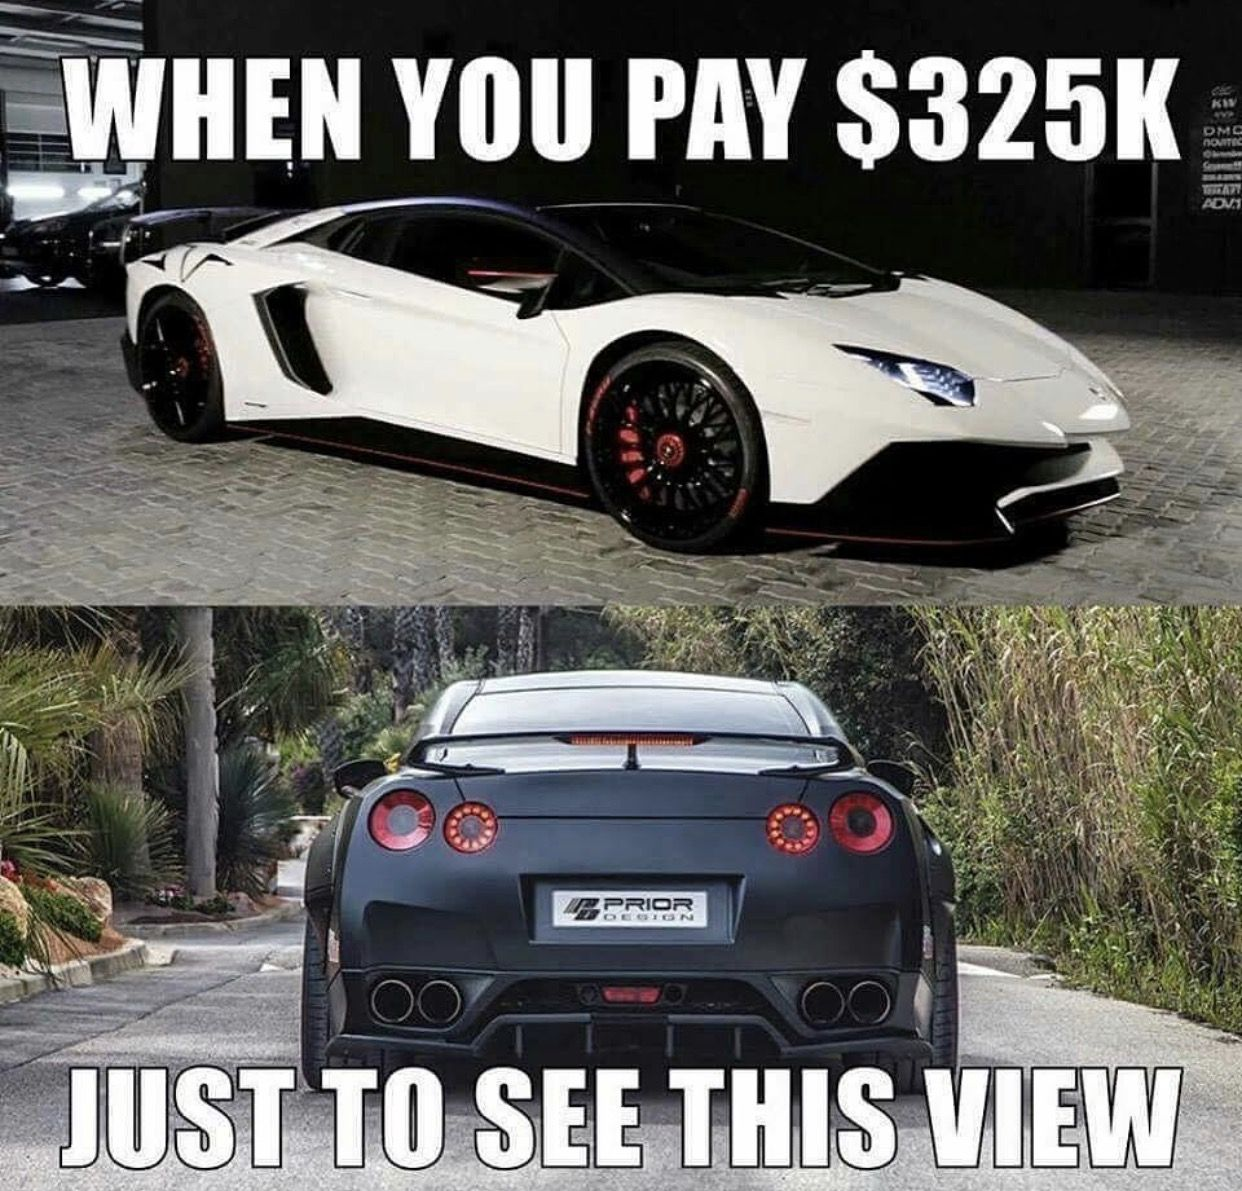 Yup With Images Funny Car Memes Truck Memes Car Jokes